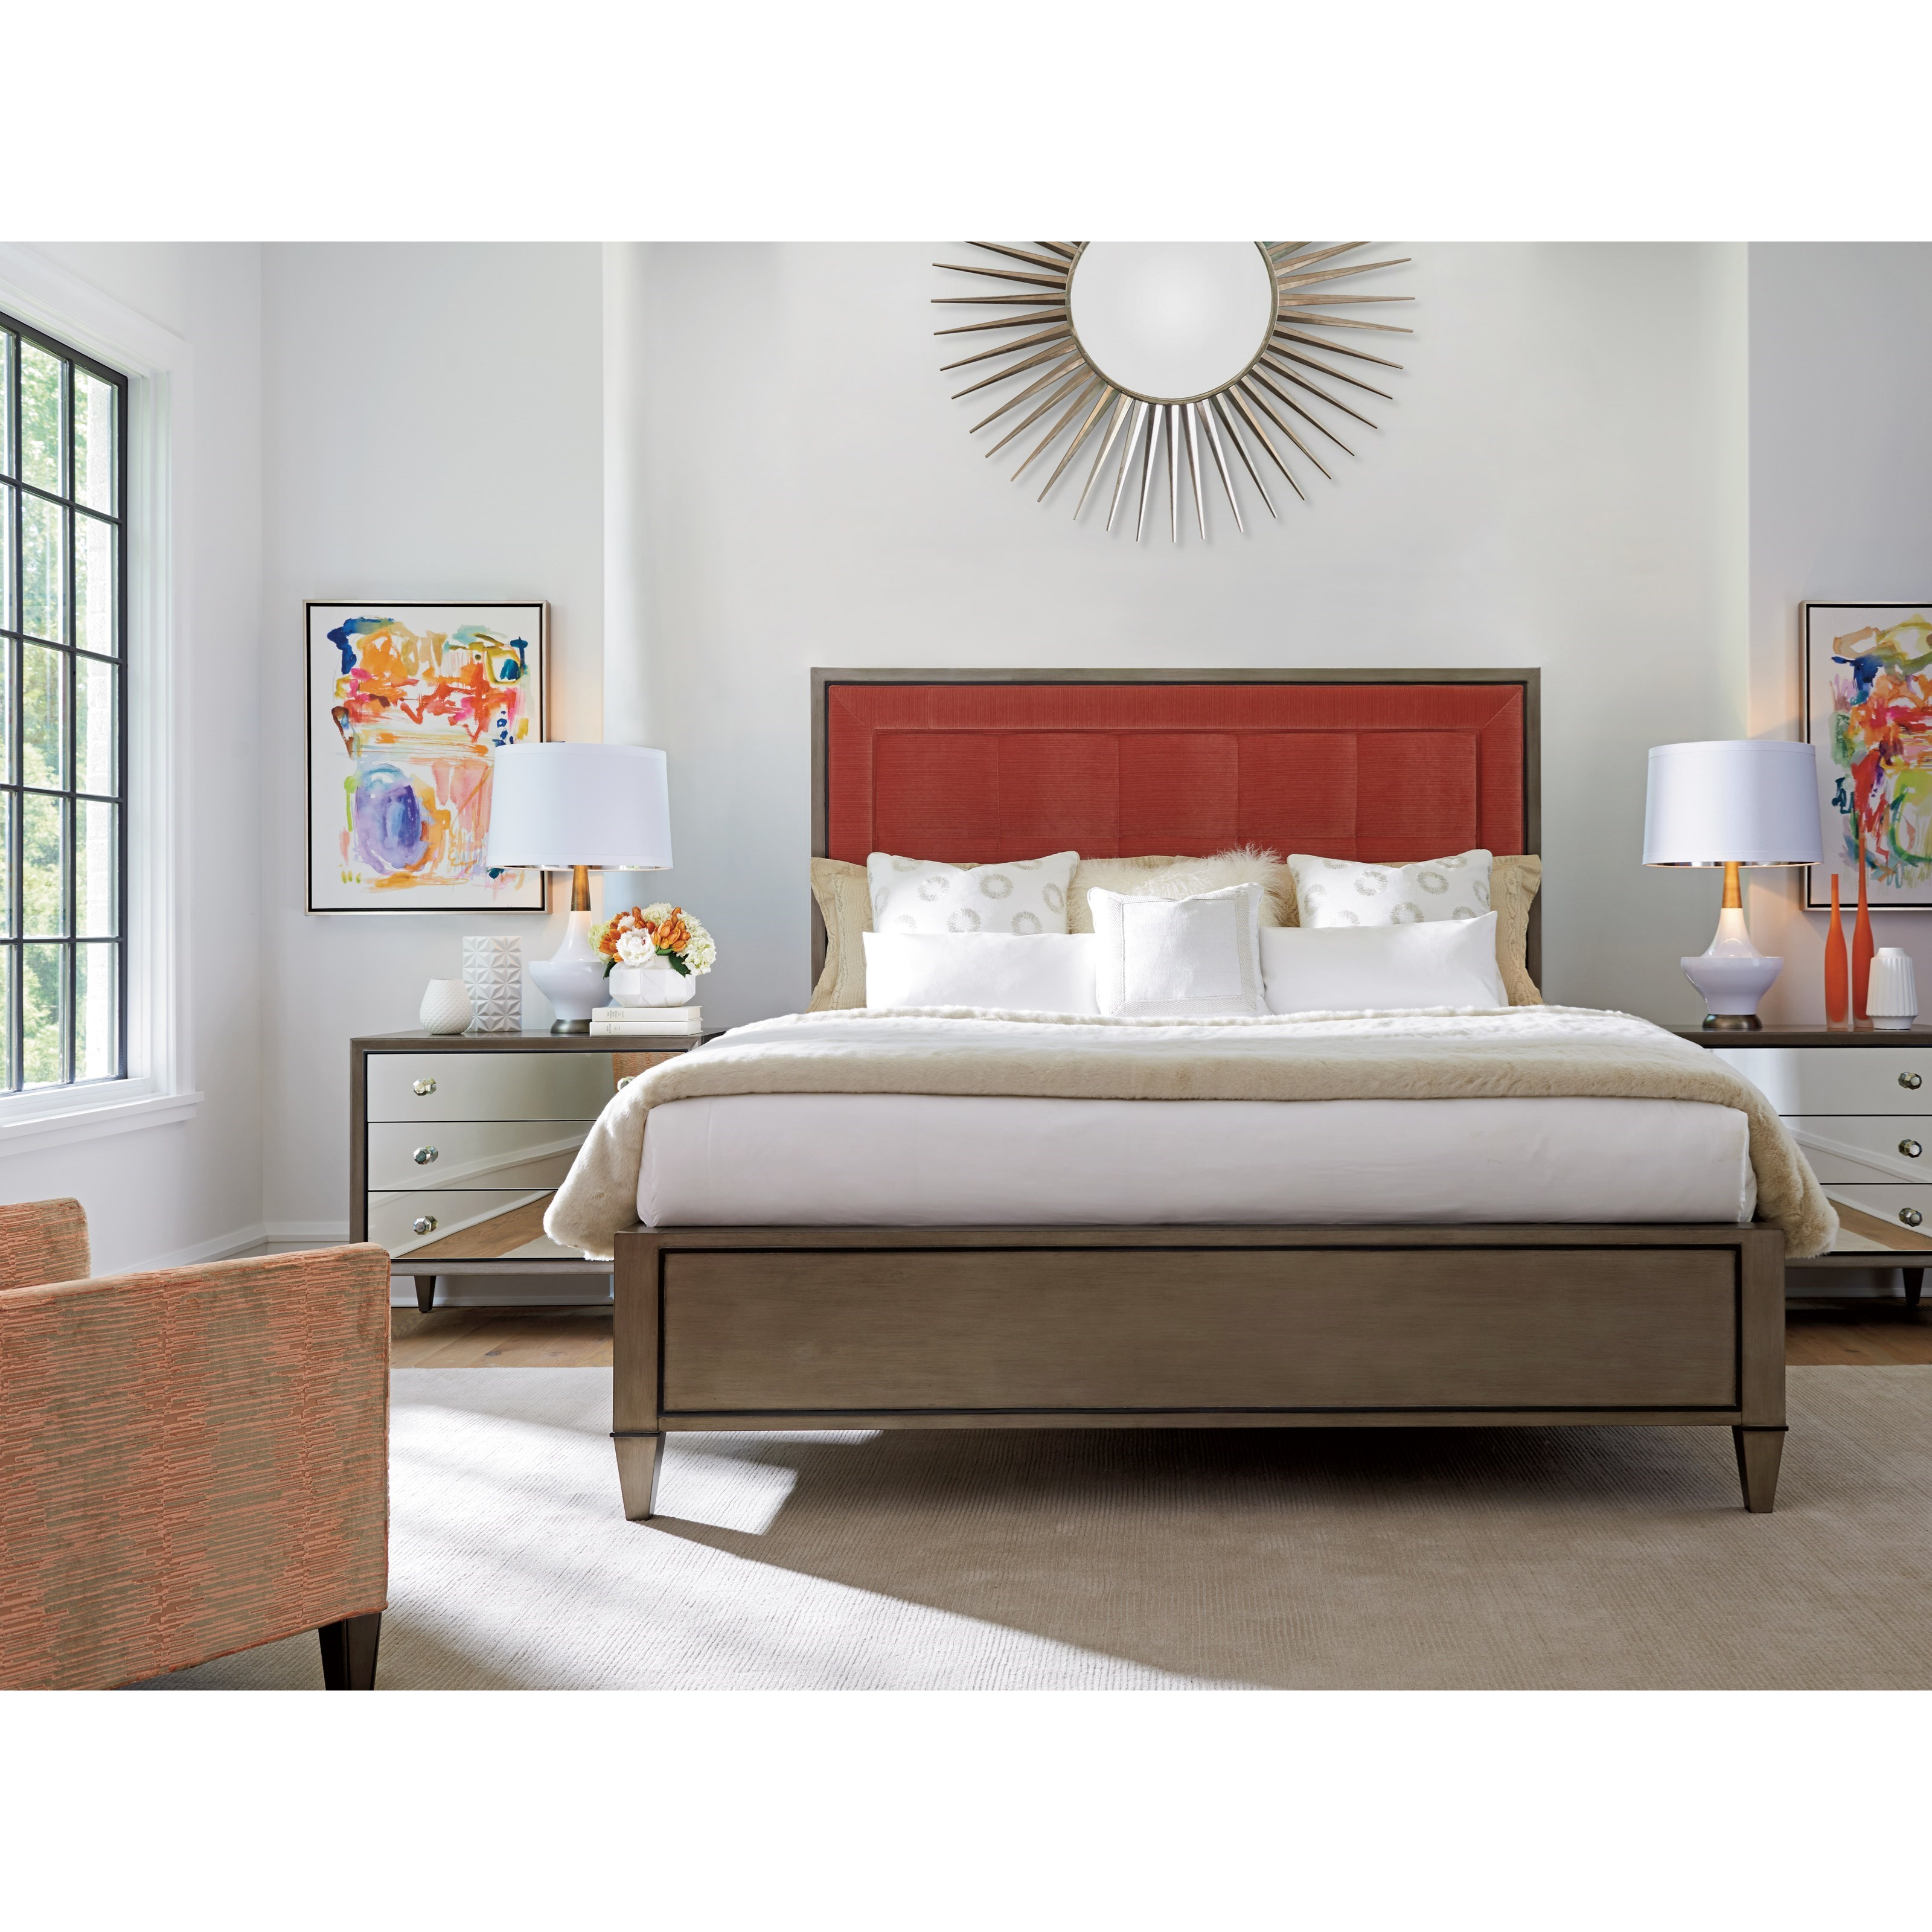 Ariana King Bedroom Group by Lexington at Baer's Furniture